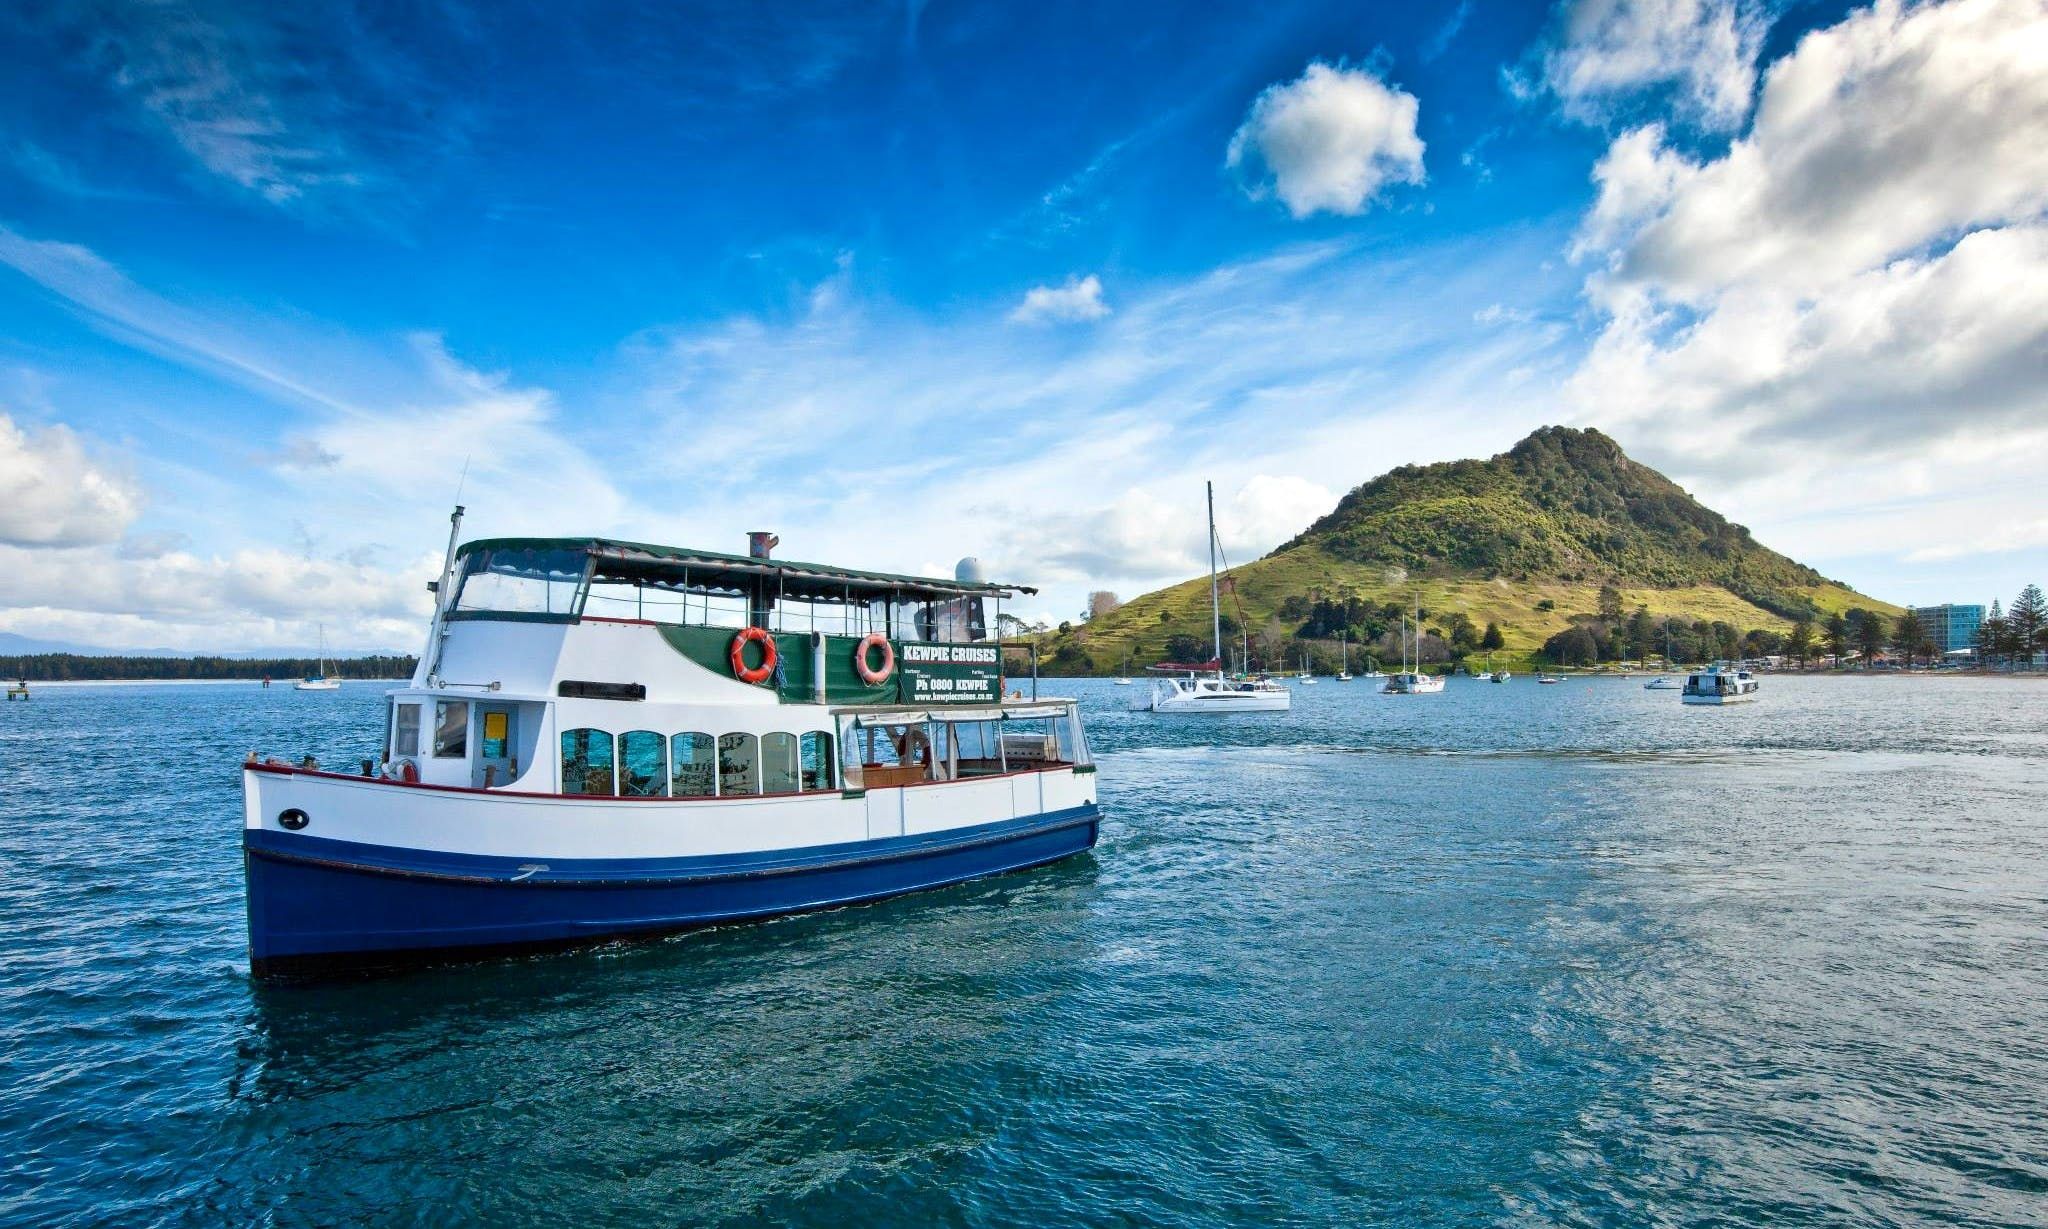 'Kewpie' Boat Scenic & Corporate Cruises in Tauranga